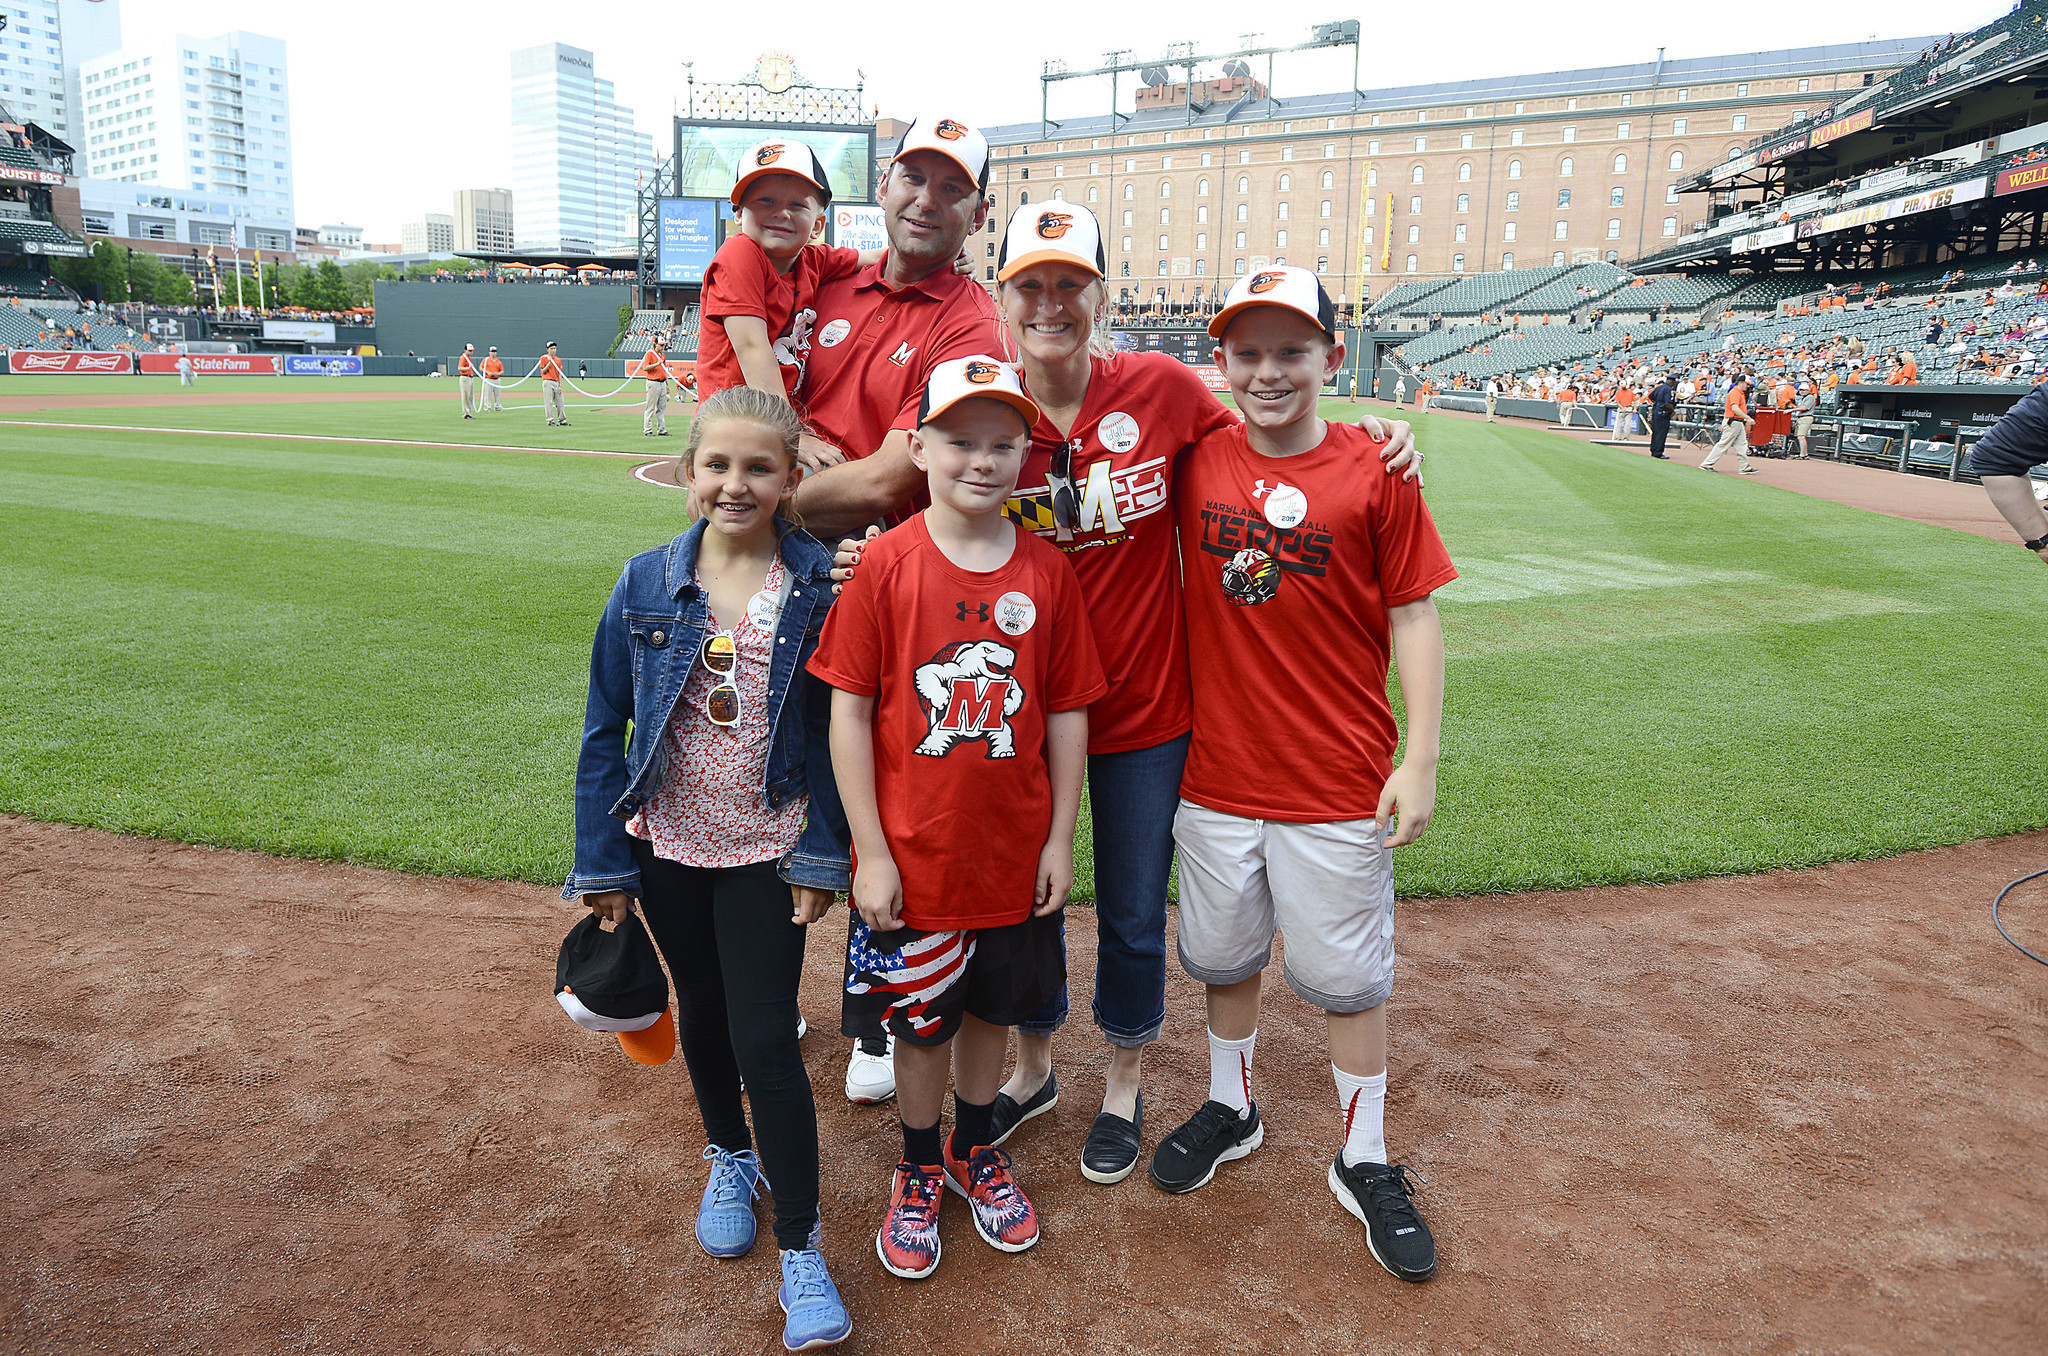 Bs-sp-terps-reese-family-0618-20170613